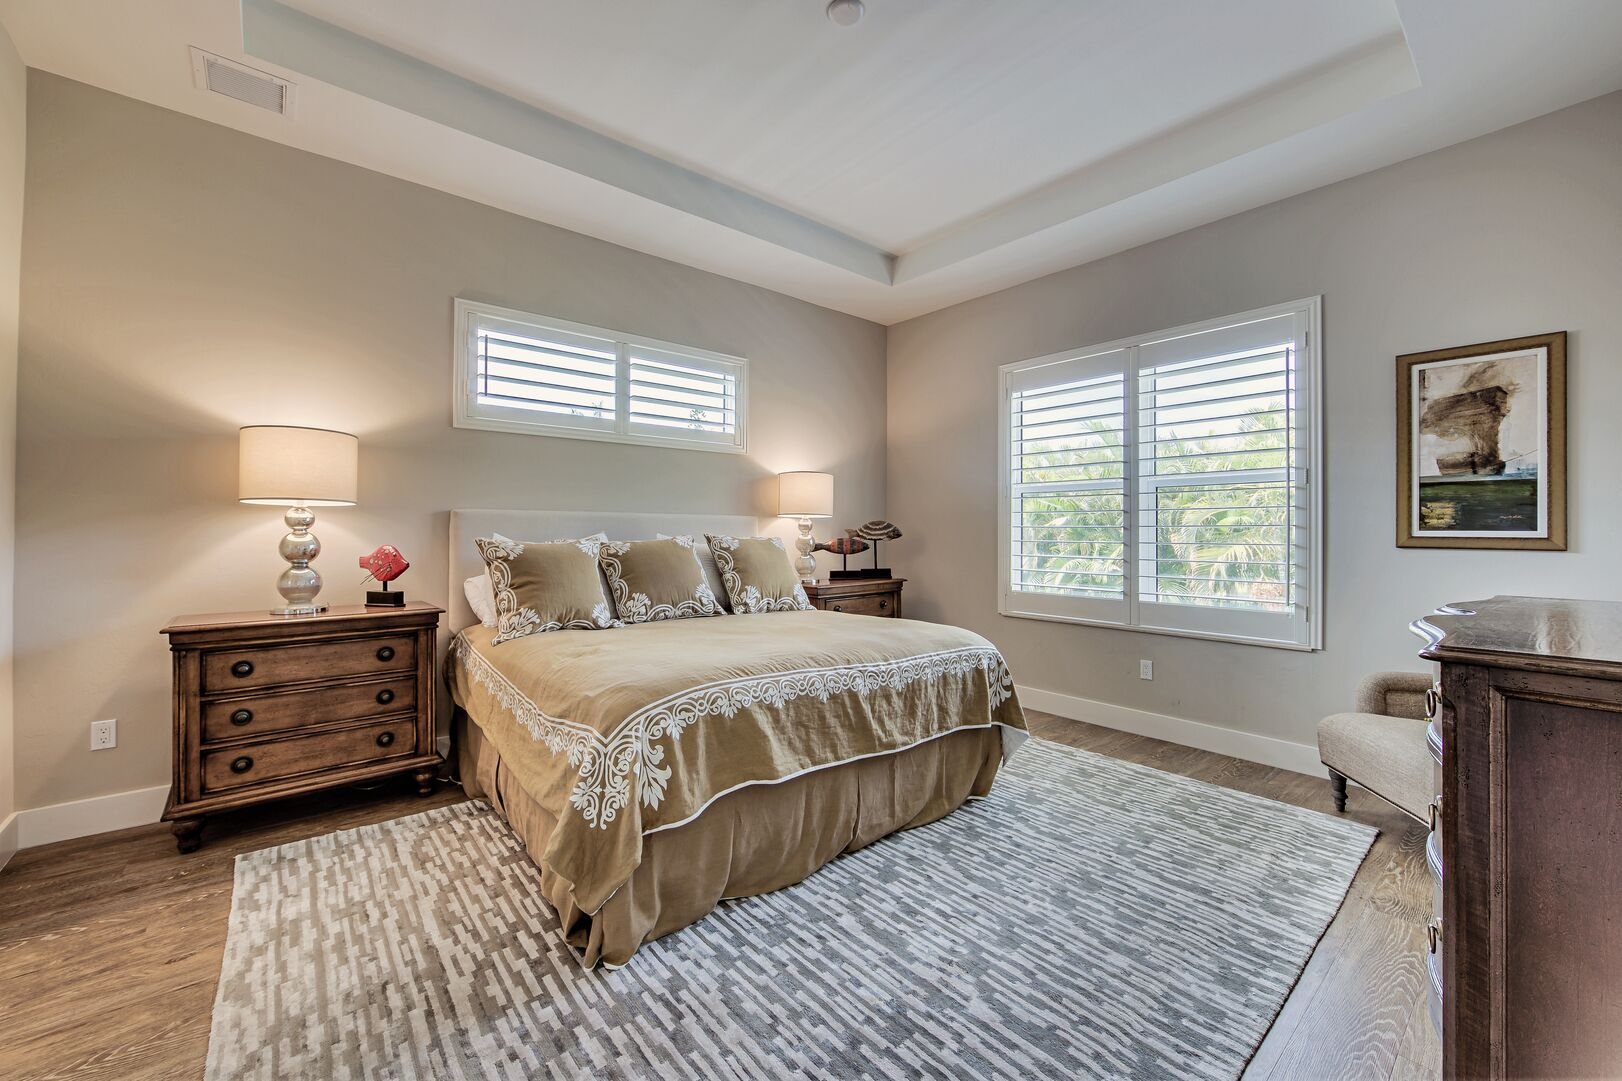 Bedroom with nearby window